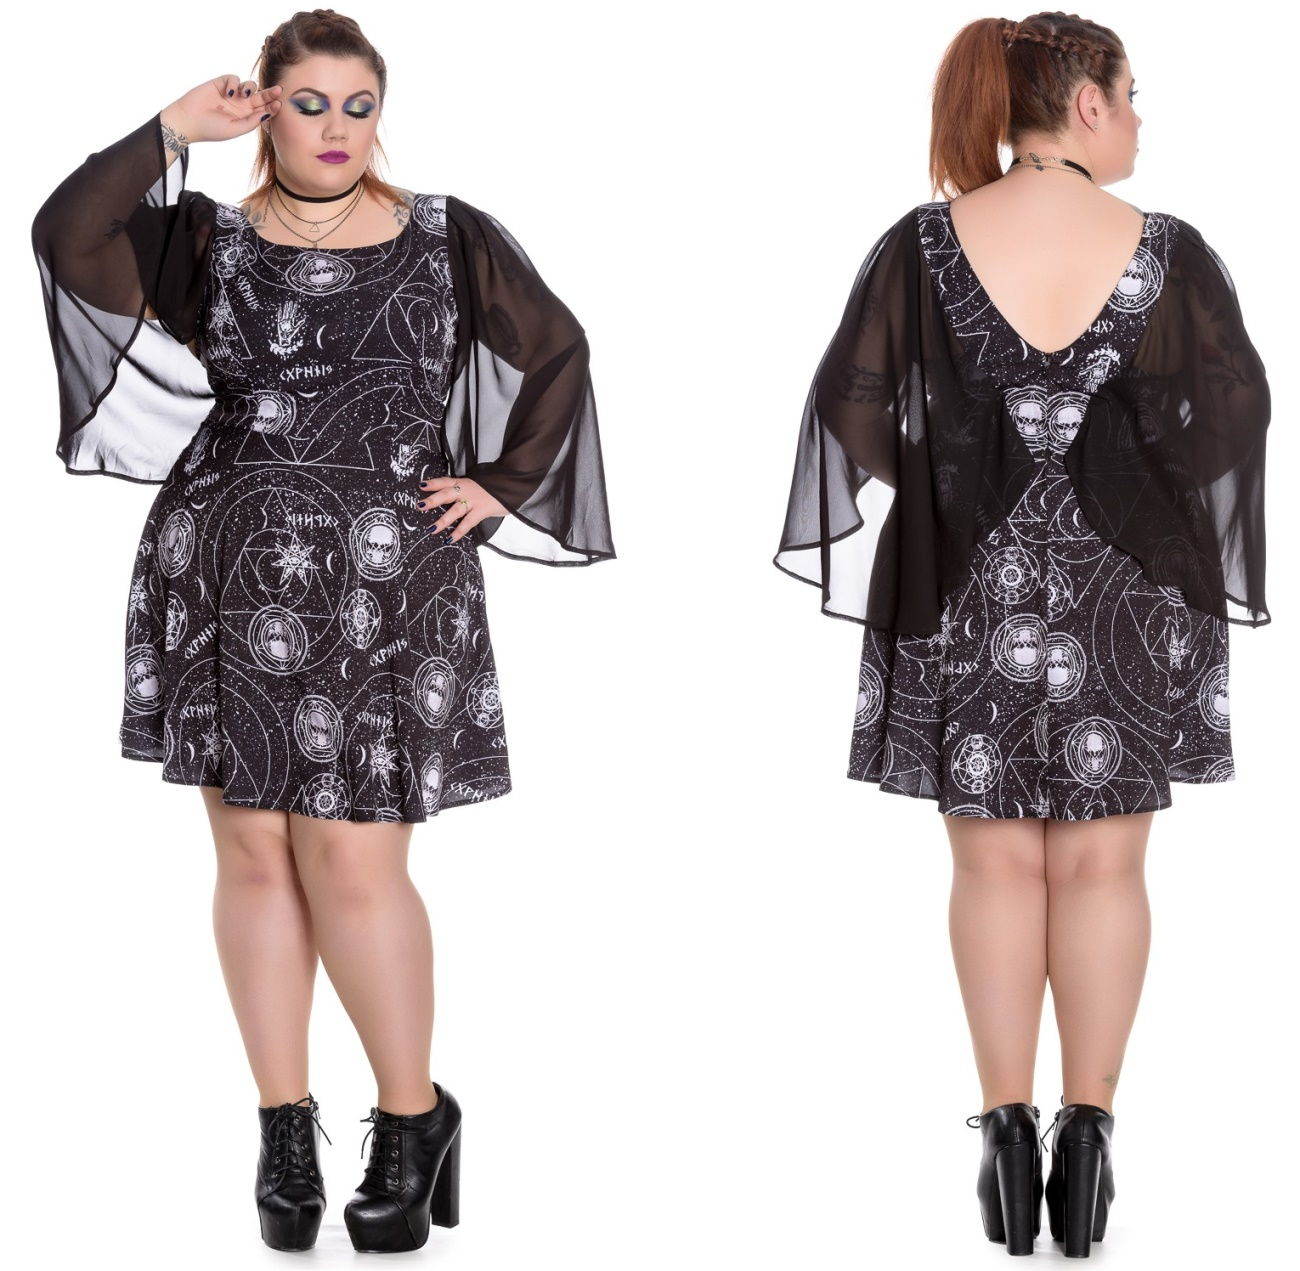 Lucille Dress/Gothicminikleid Spin Doctor Plussize - Spin Doctor ...